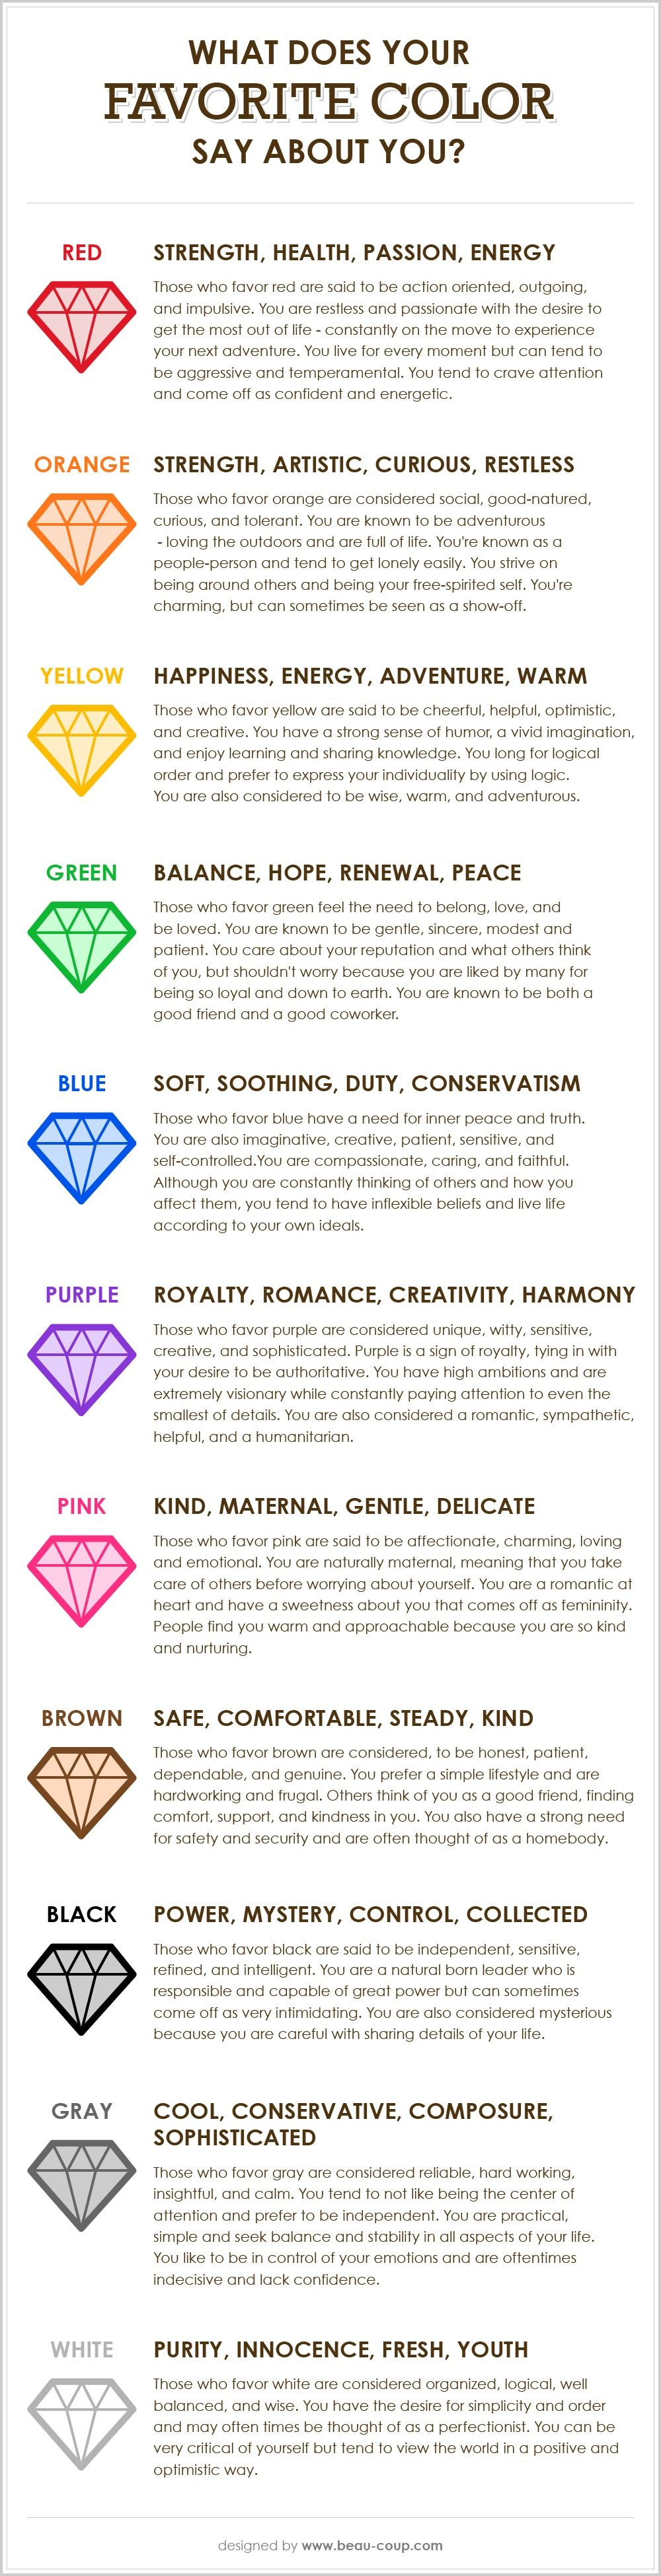 what does your favorite color say about you favorite color and did you know that colors are known to go along certain feelings and qualities